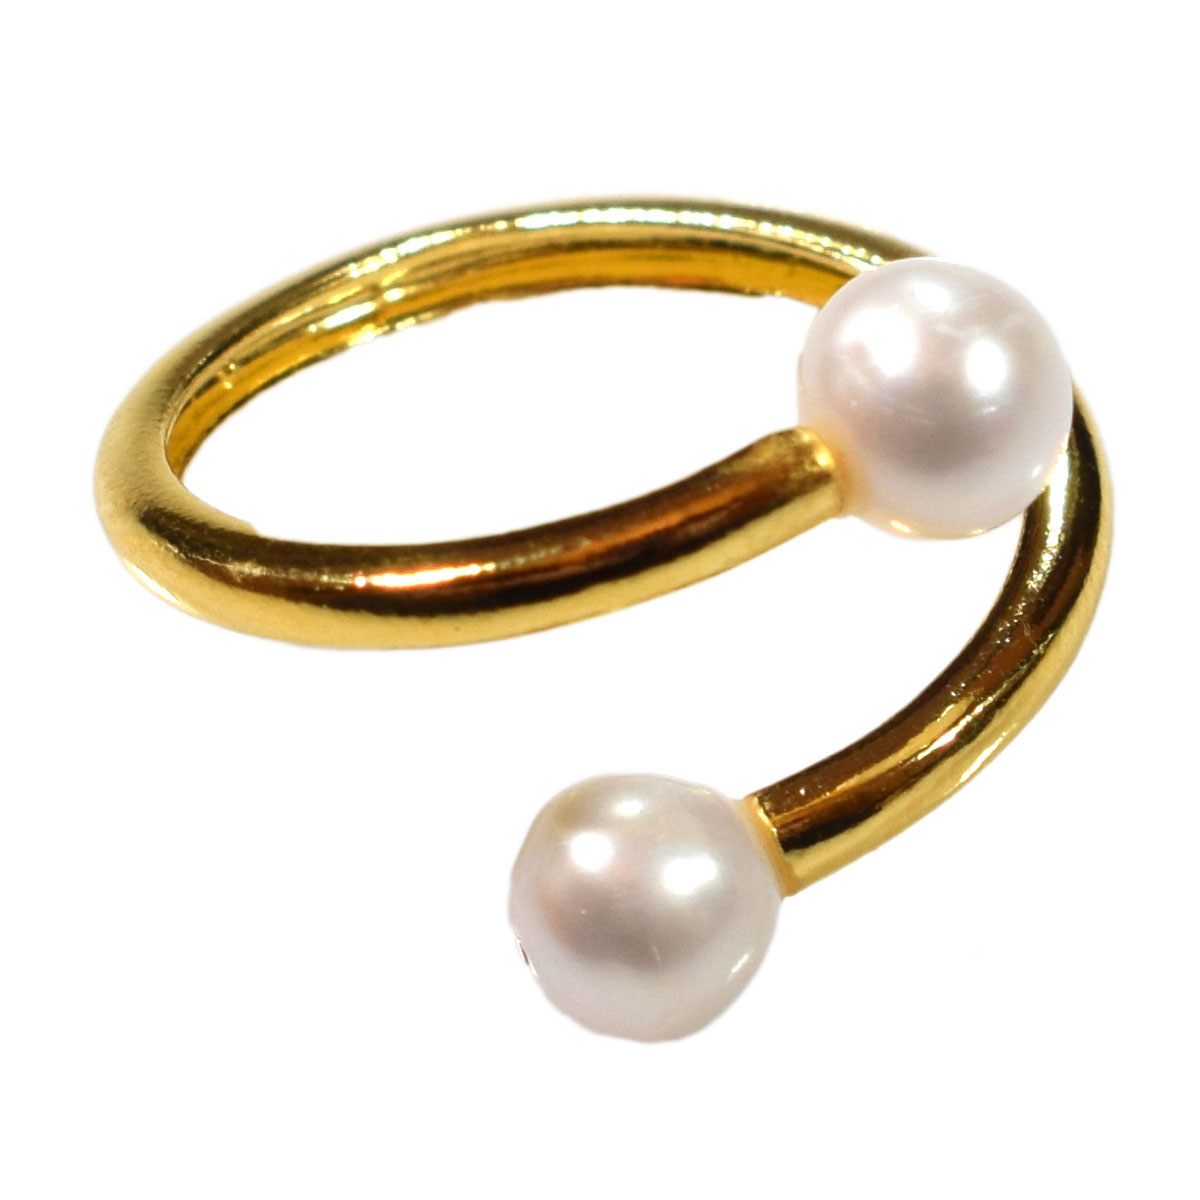 Pearl and Zircon Ring Handmade 925K Sterling Silver Ring 18K Gold Plated Over Silver